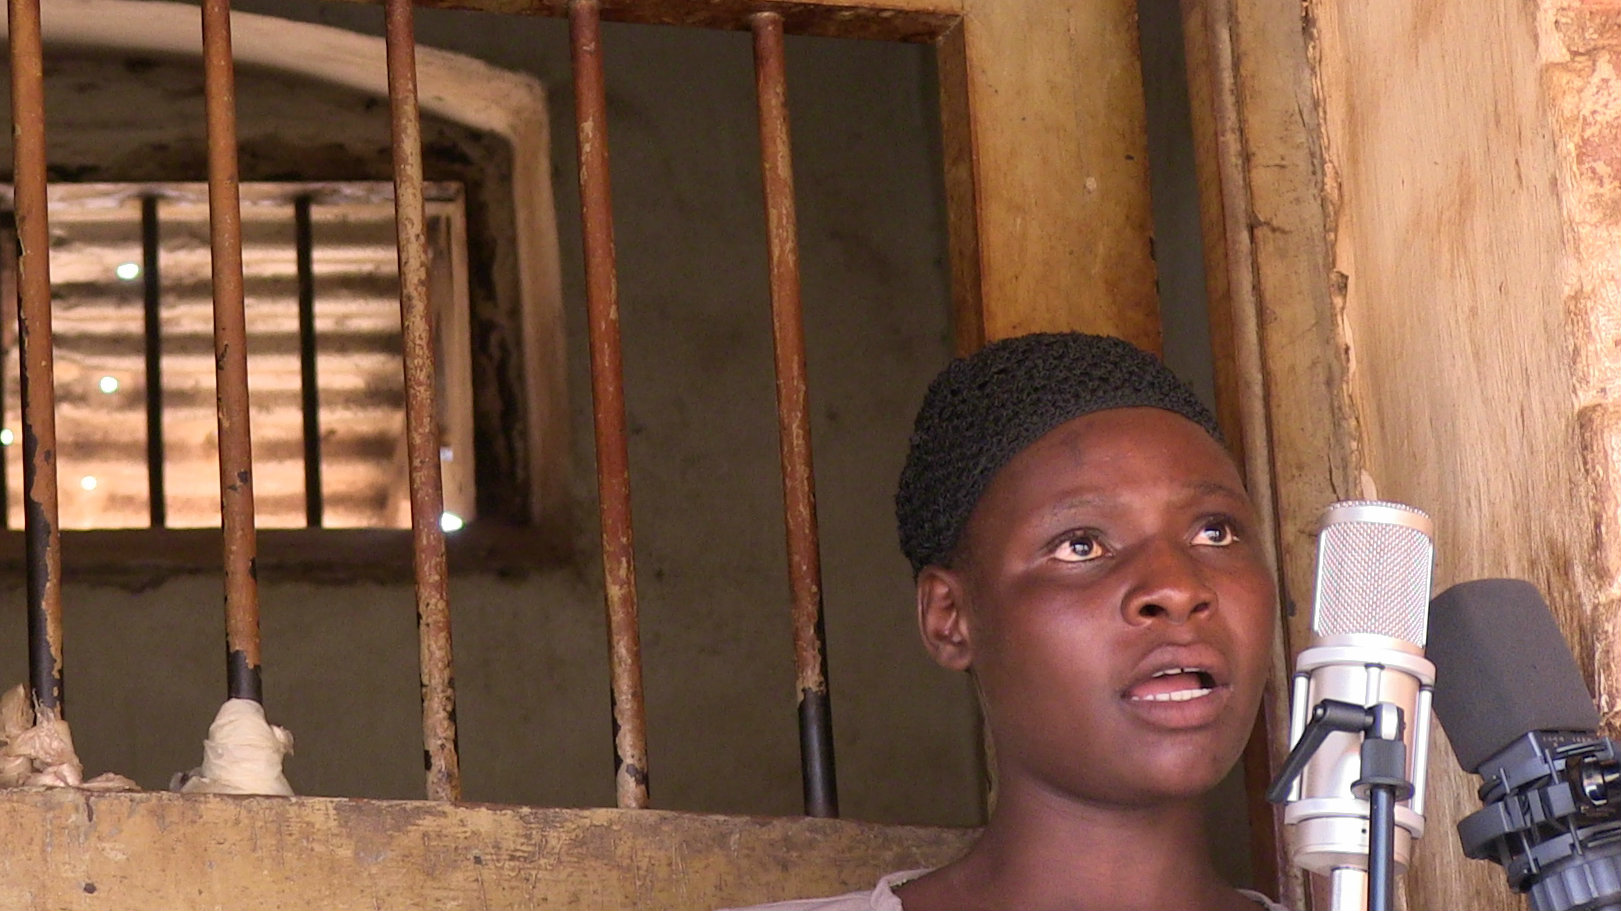 A Grammy nomination is a sign that the Malawi prisoners' voices have been heard.